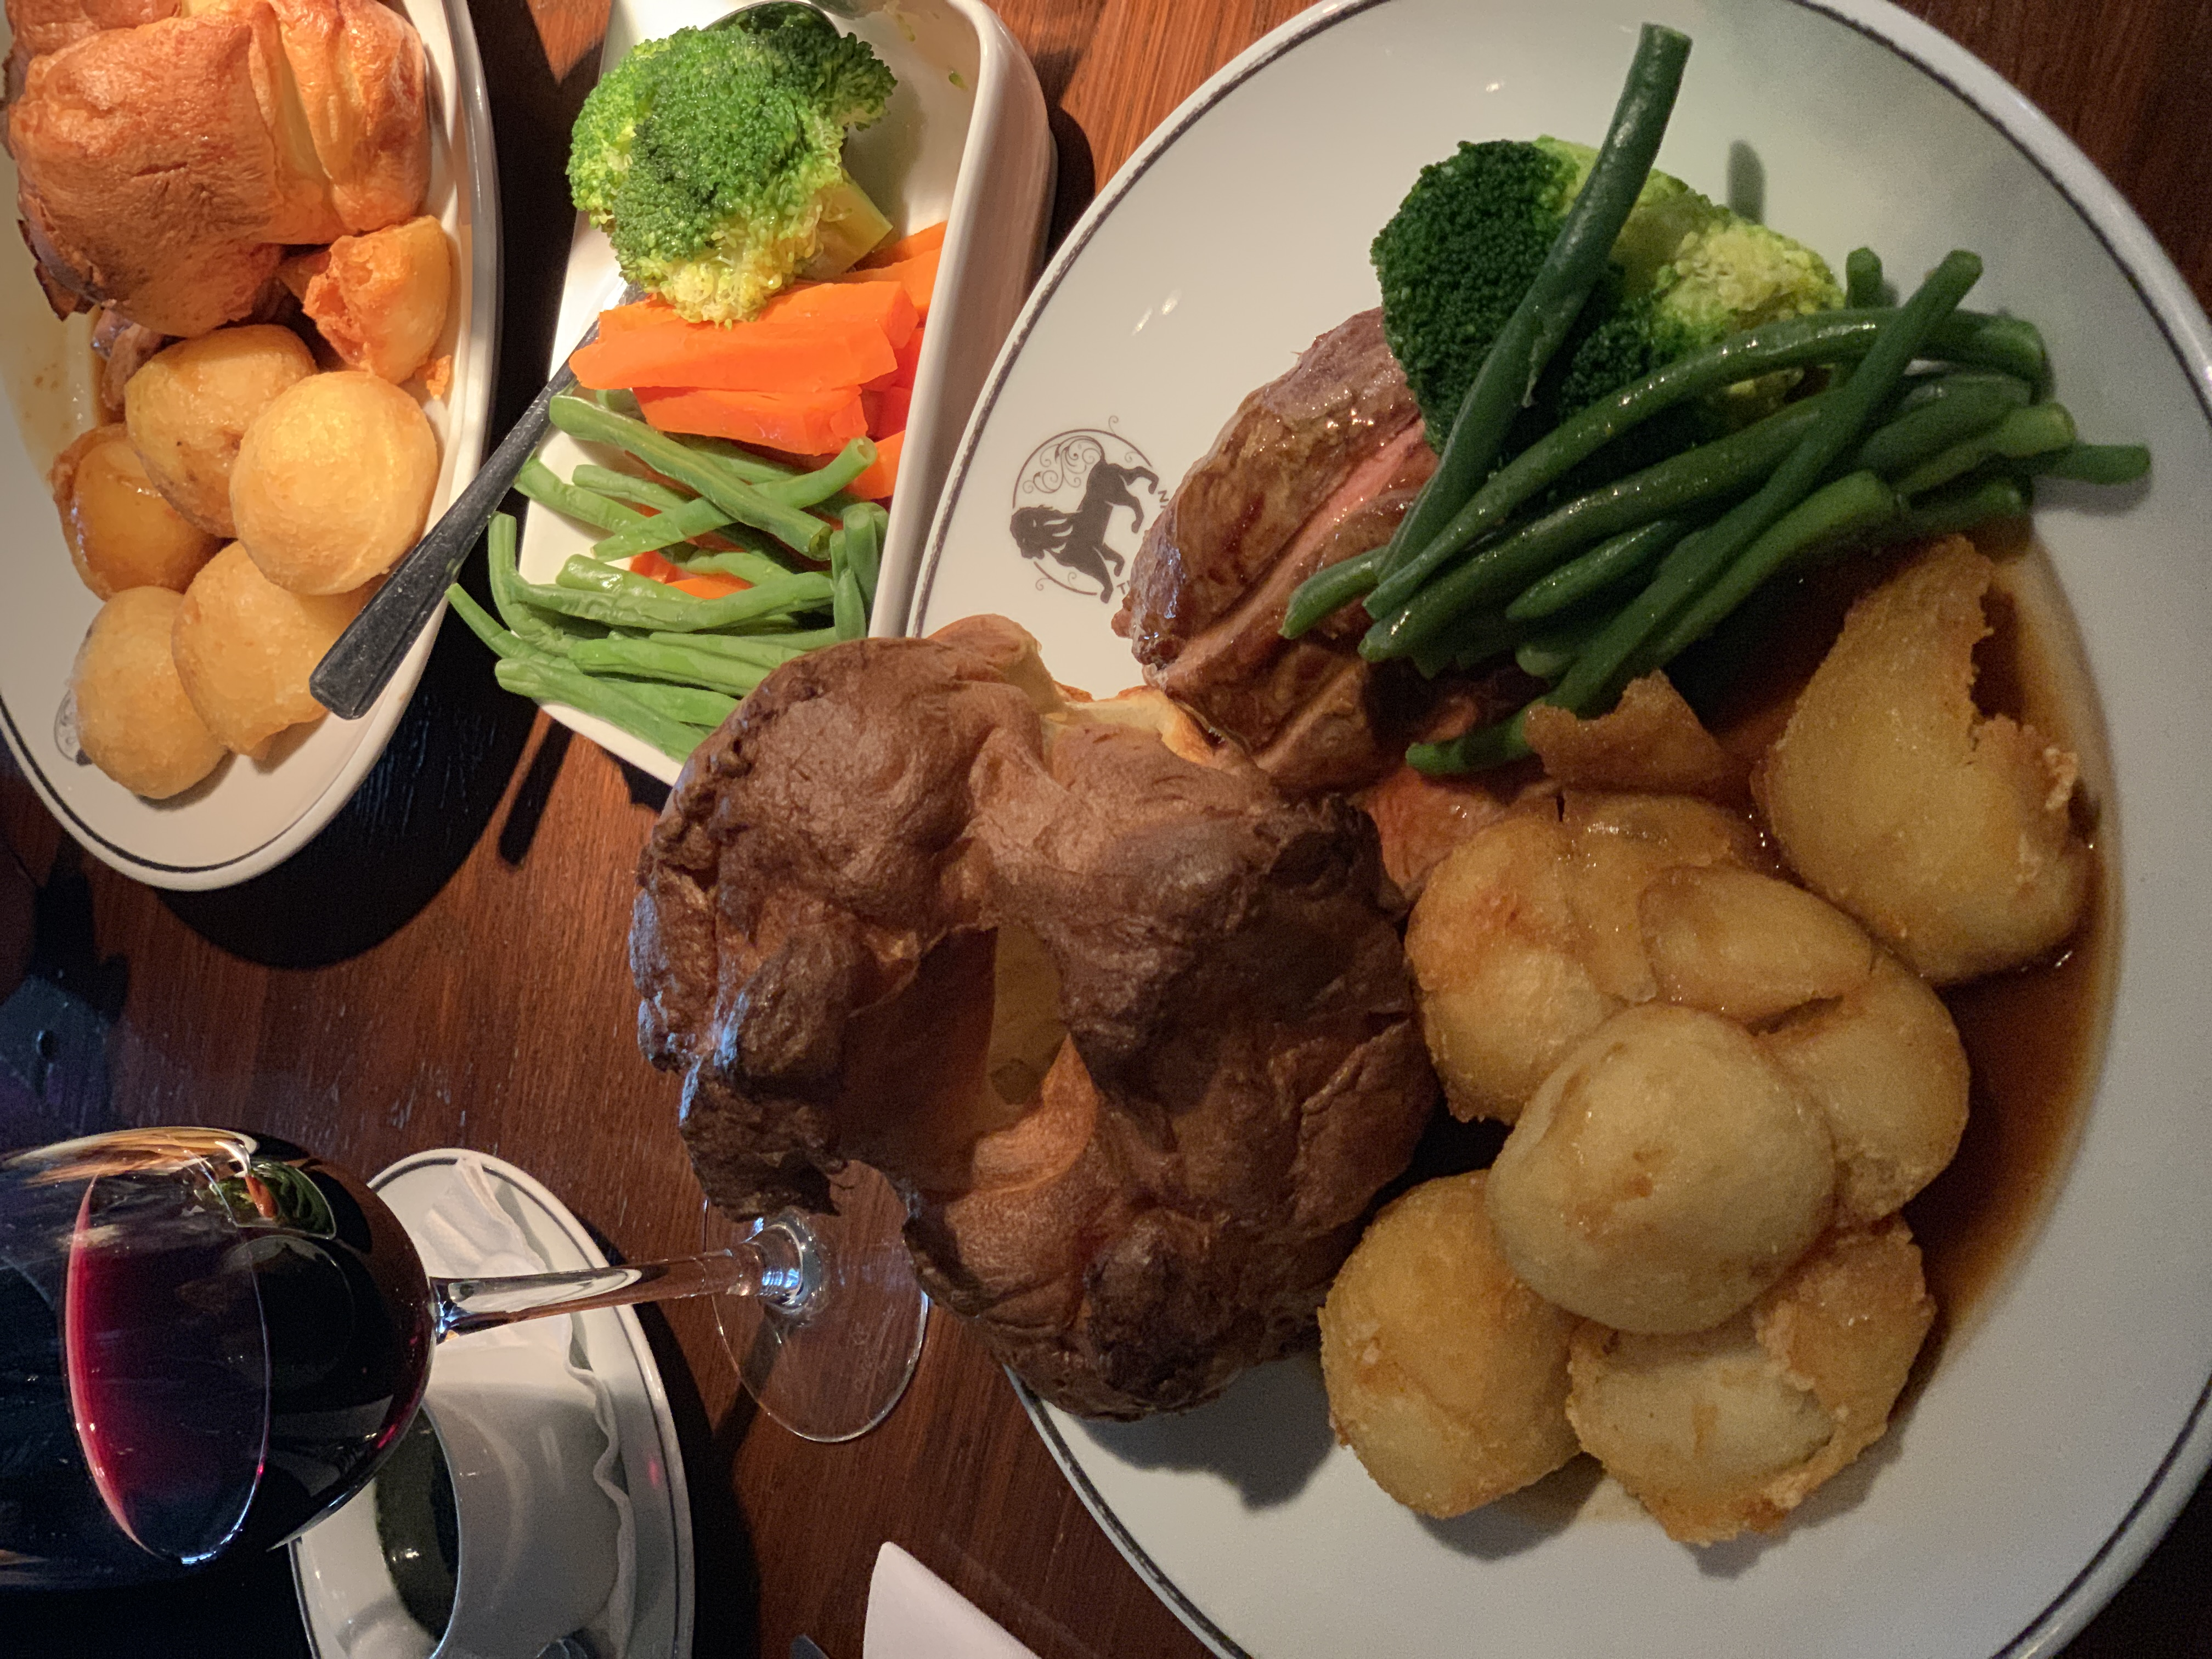 lion inn review restaurant pr agency essex